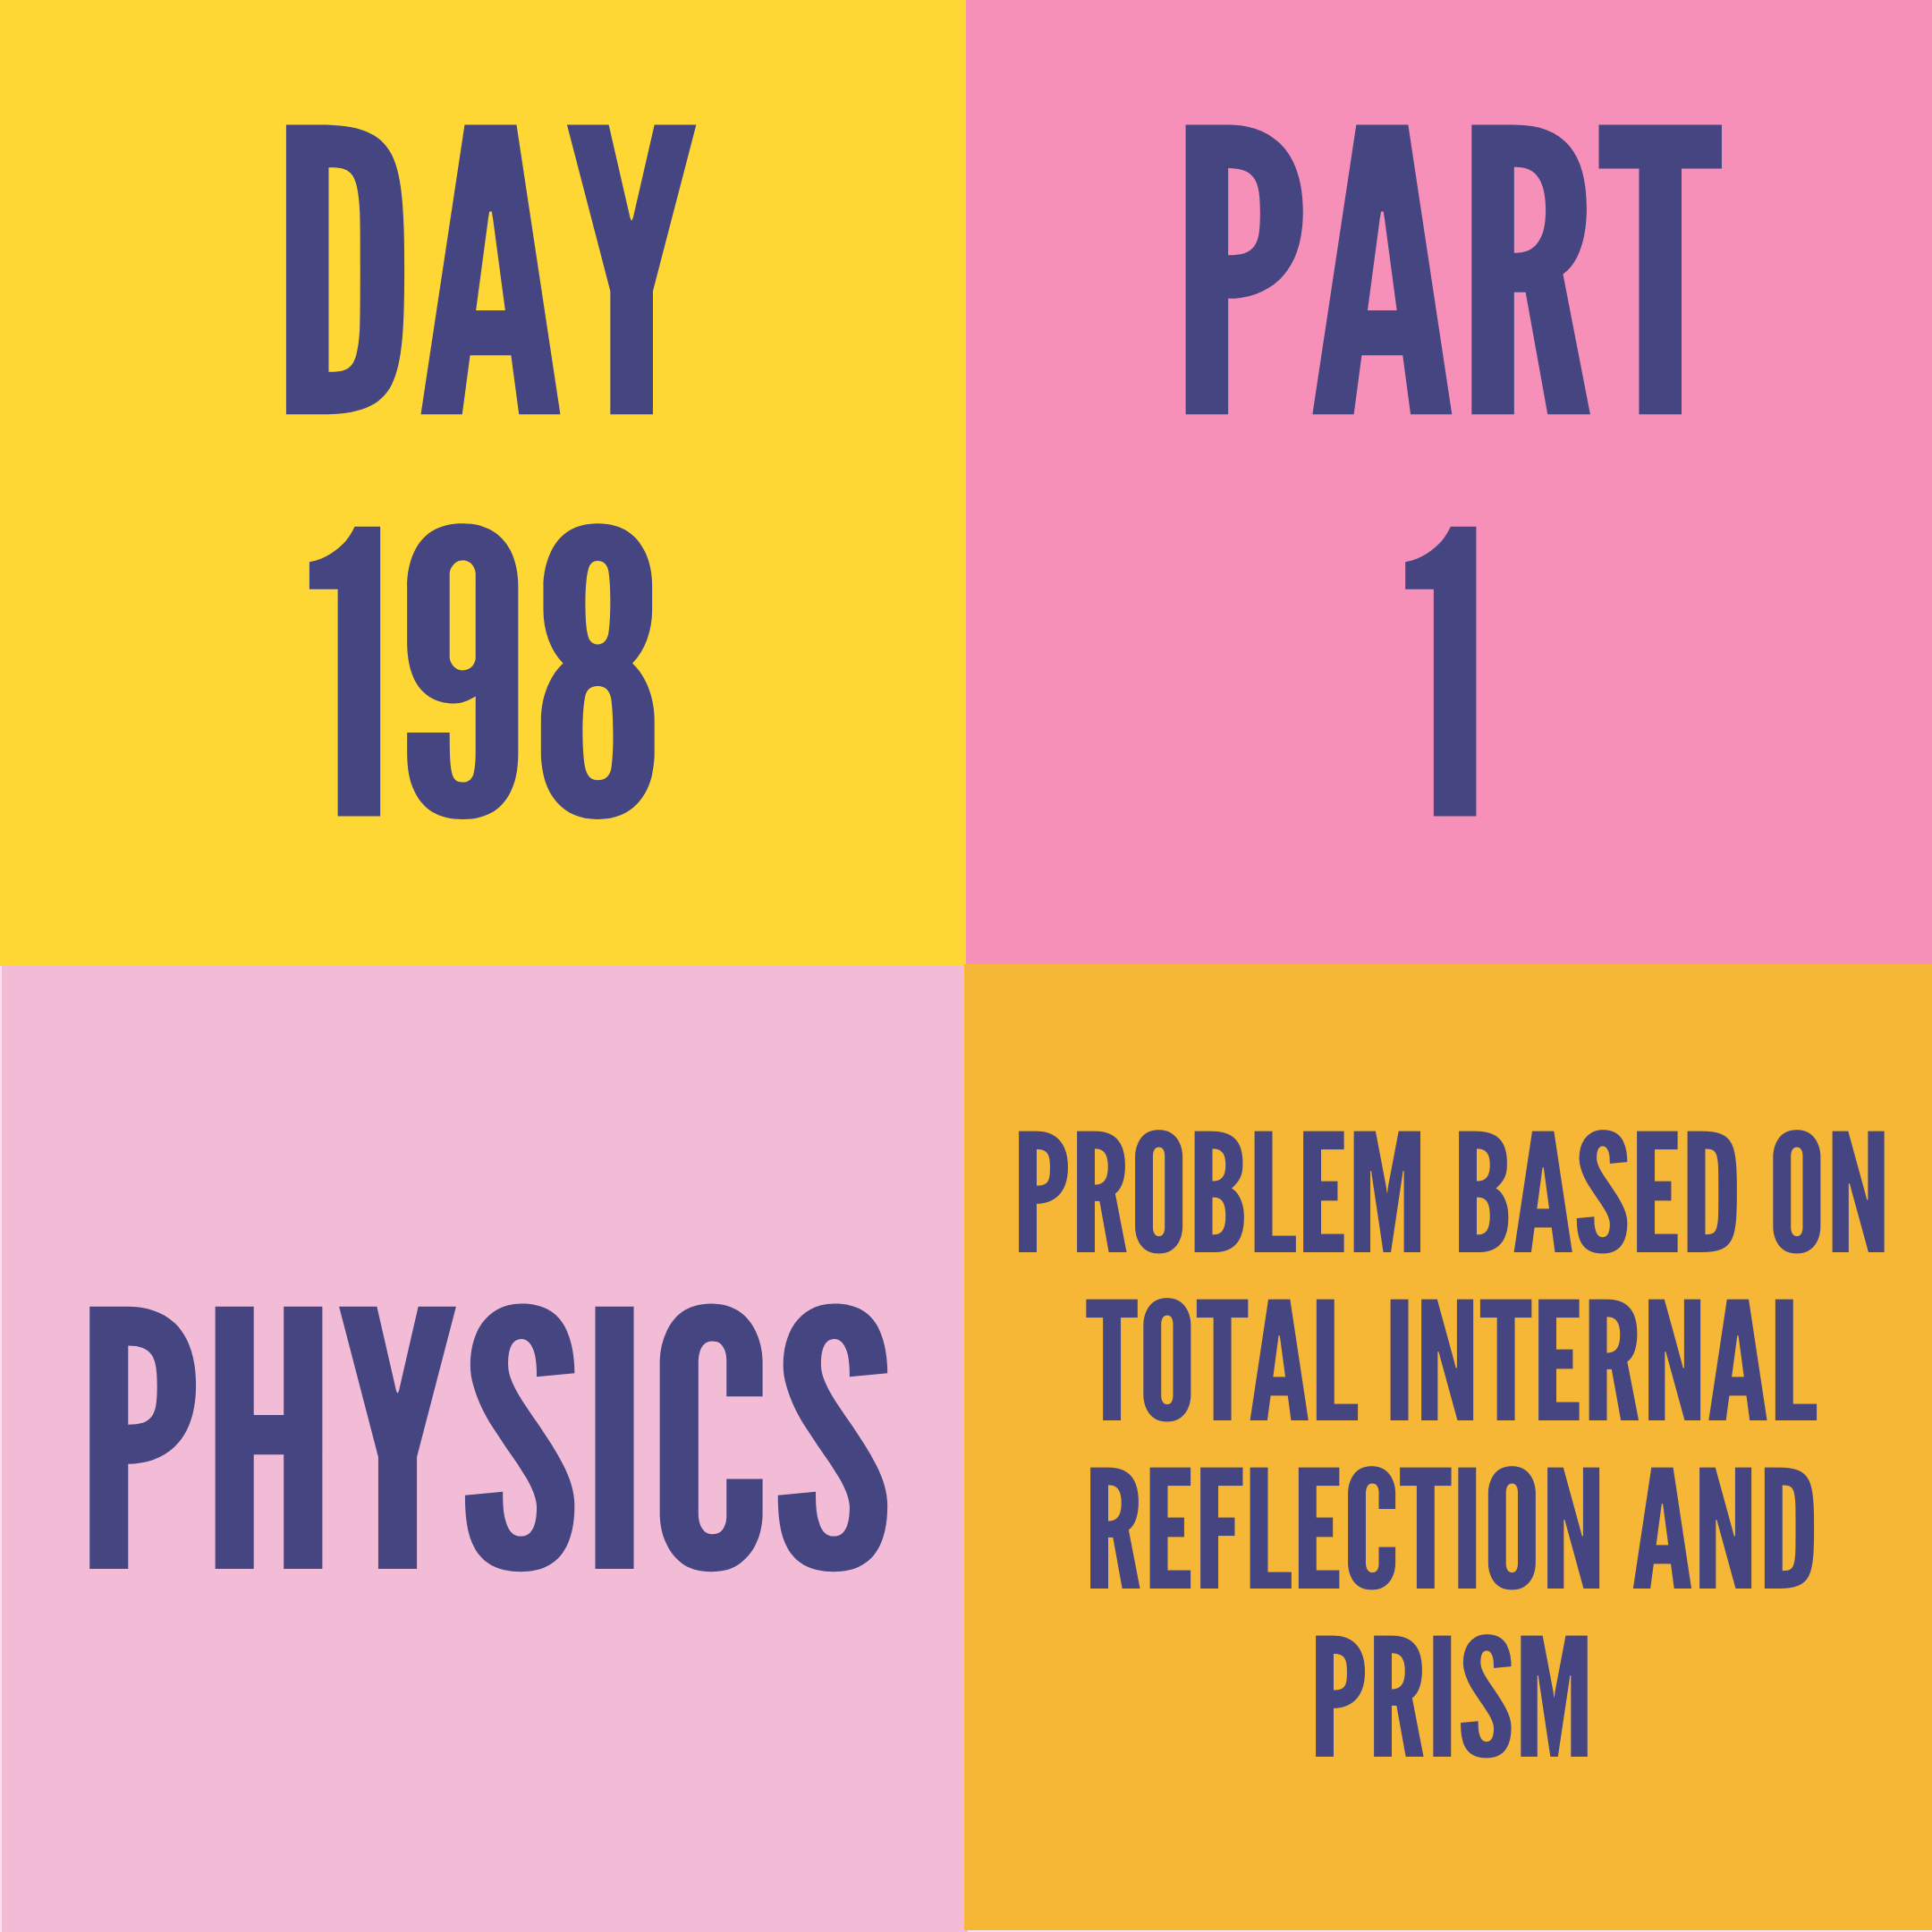 DAY-198 PART-1 PROBLEM BASED ON TOTAL INTERNAL REFLECTION AND PRISM